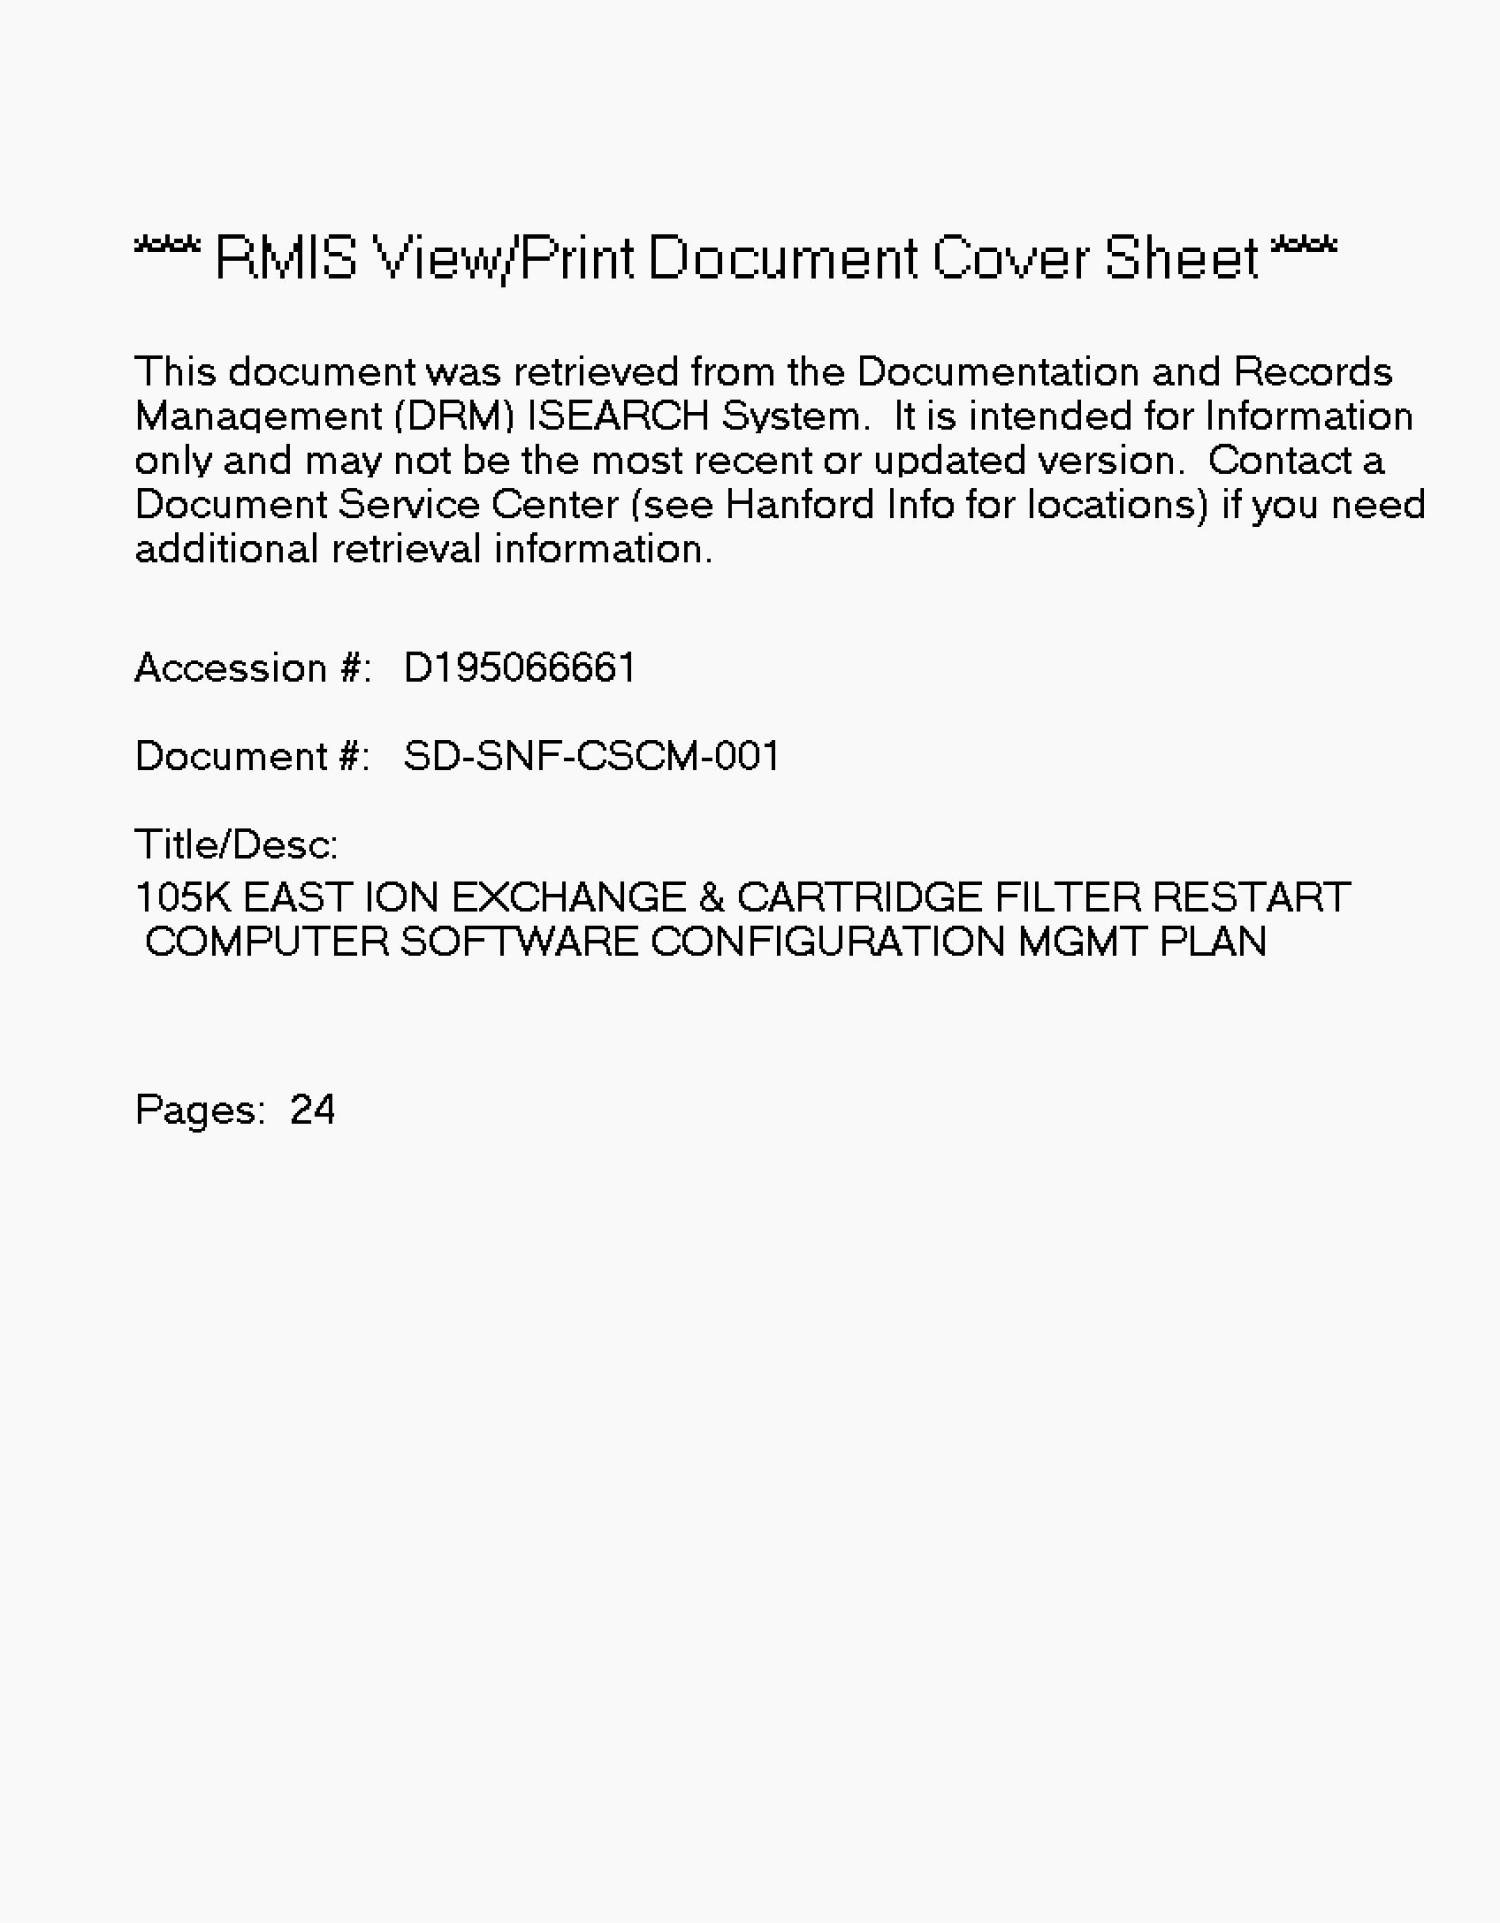 105 K east ion exchange and cartridge filter restart computer software configuration management plan                                                                                                      [Sequence #]: 1 of 24